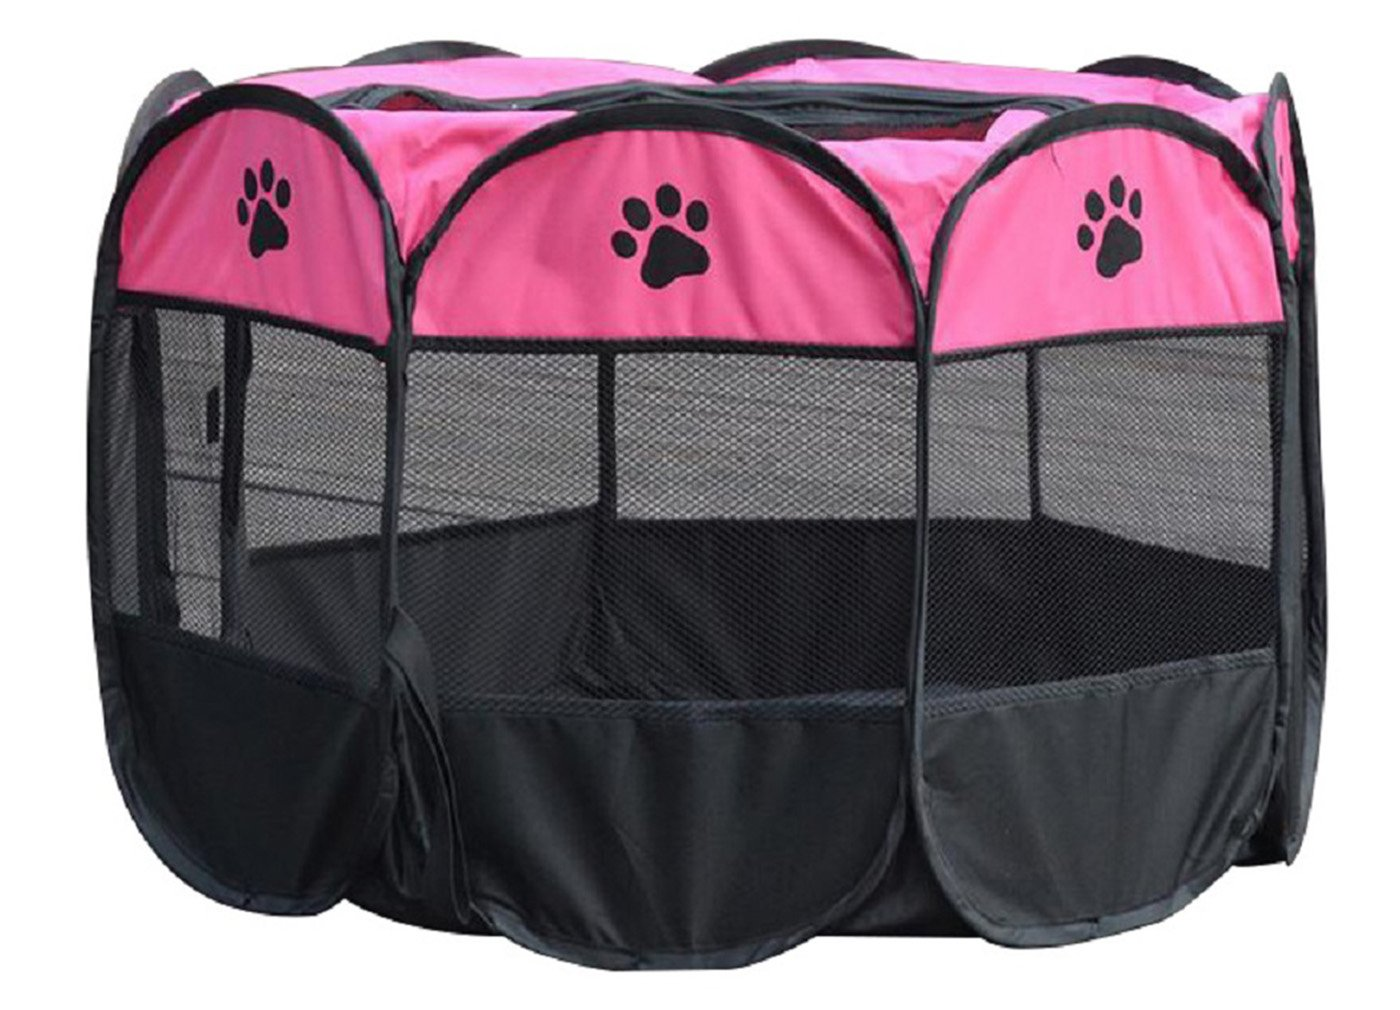 Purple S Purple S Kennel Go Out Portable Large Dog Cage Tent Outdoor Pet Supplies Small Medium Sized Dog Fence Foldable 3 colors 2 Sizes (S, Purple)